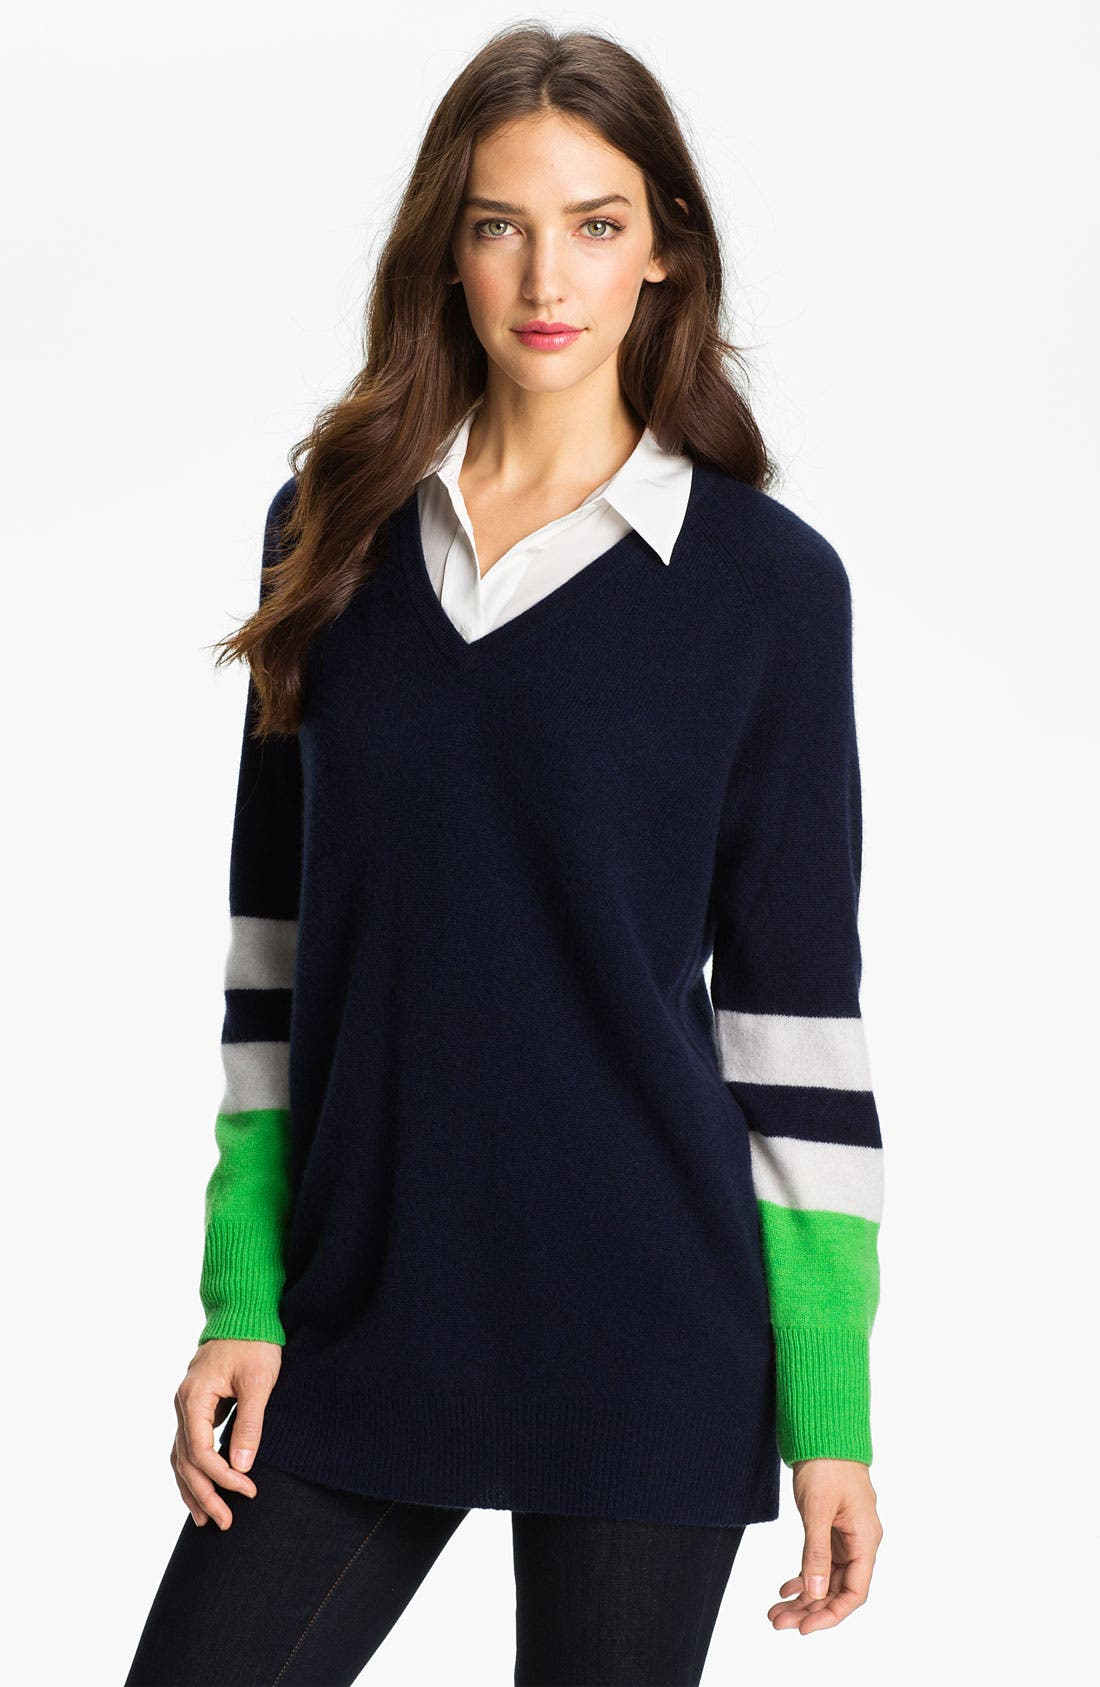 Alternate Image 1 Selected - Equipment 'Asher' Colorblock Sweater